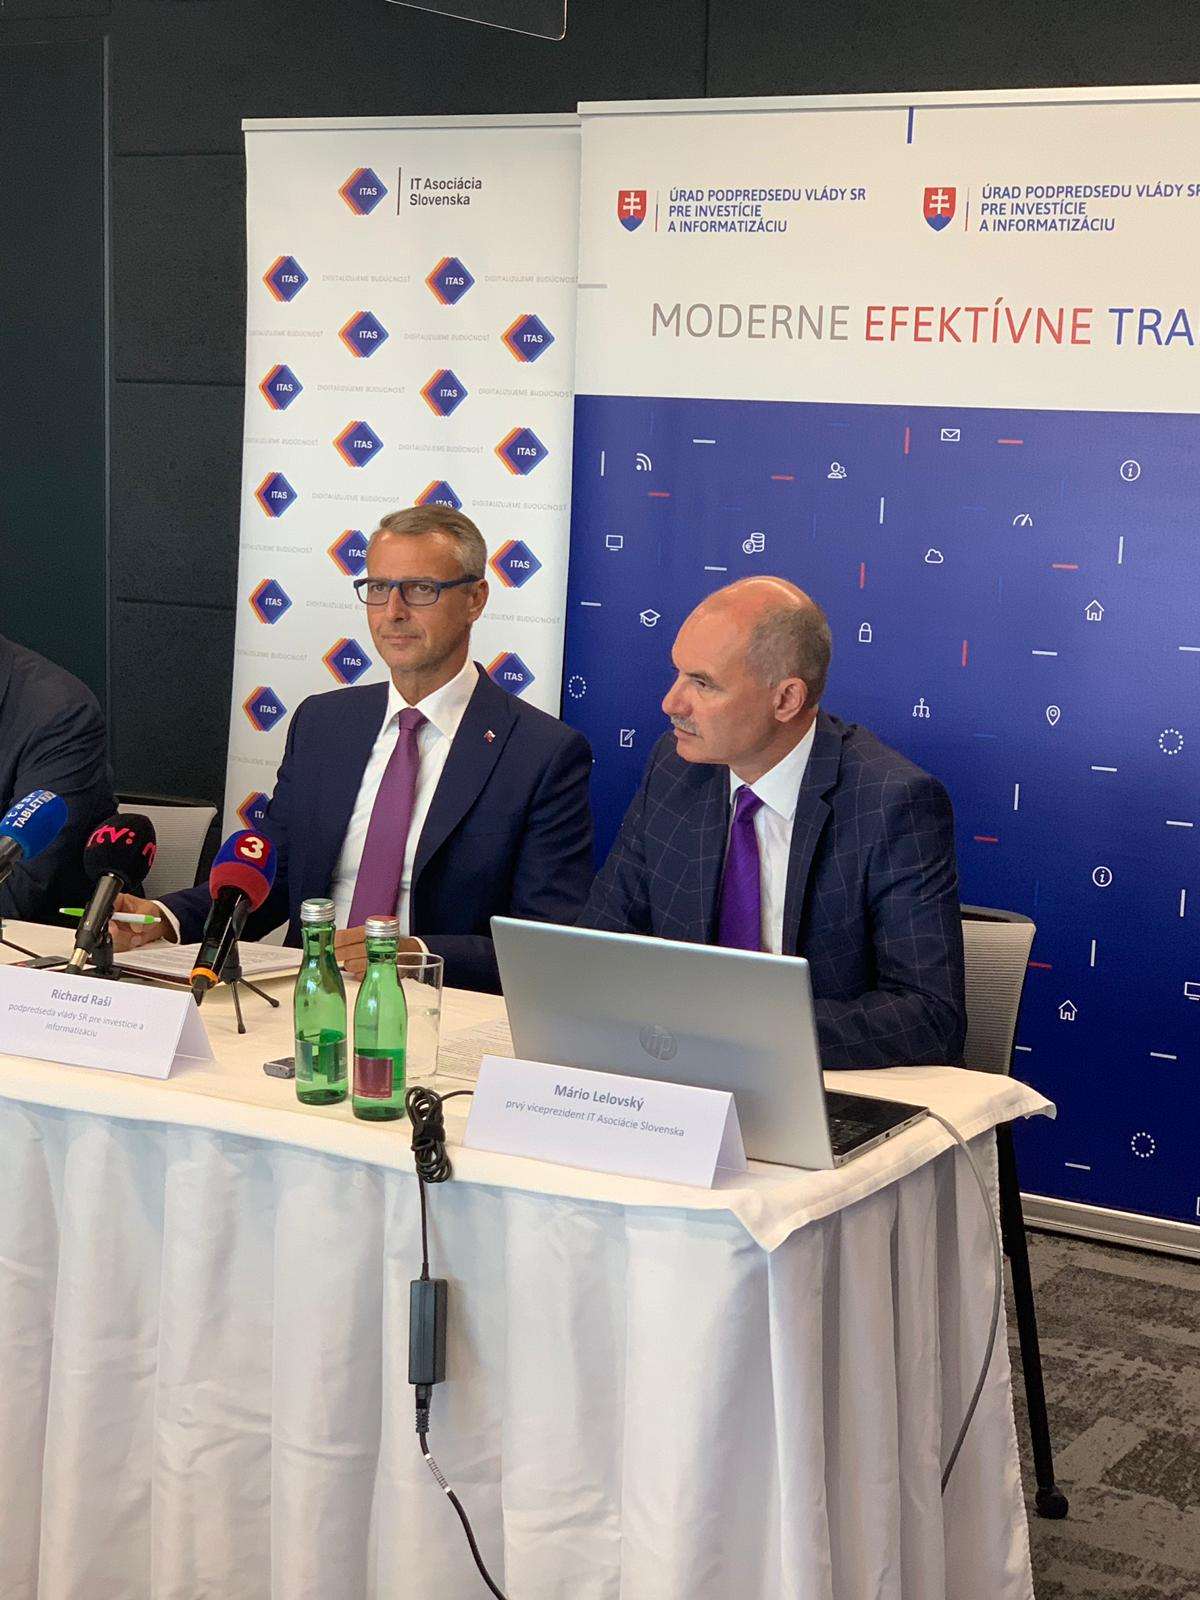 R. Raši: It is essential for employees to master digital technologies